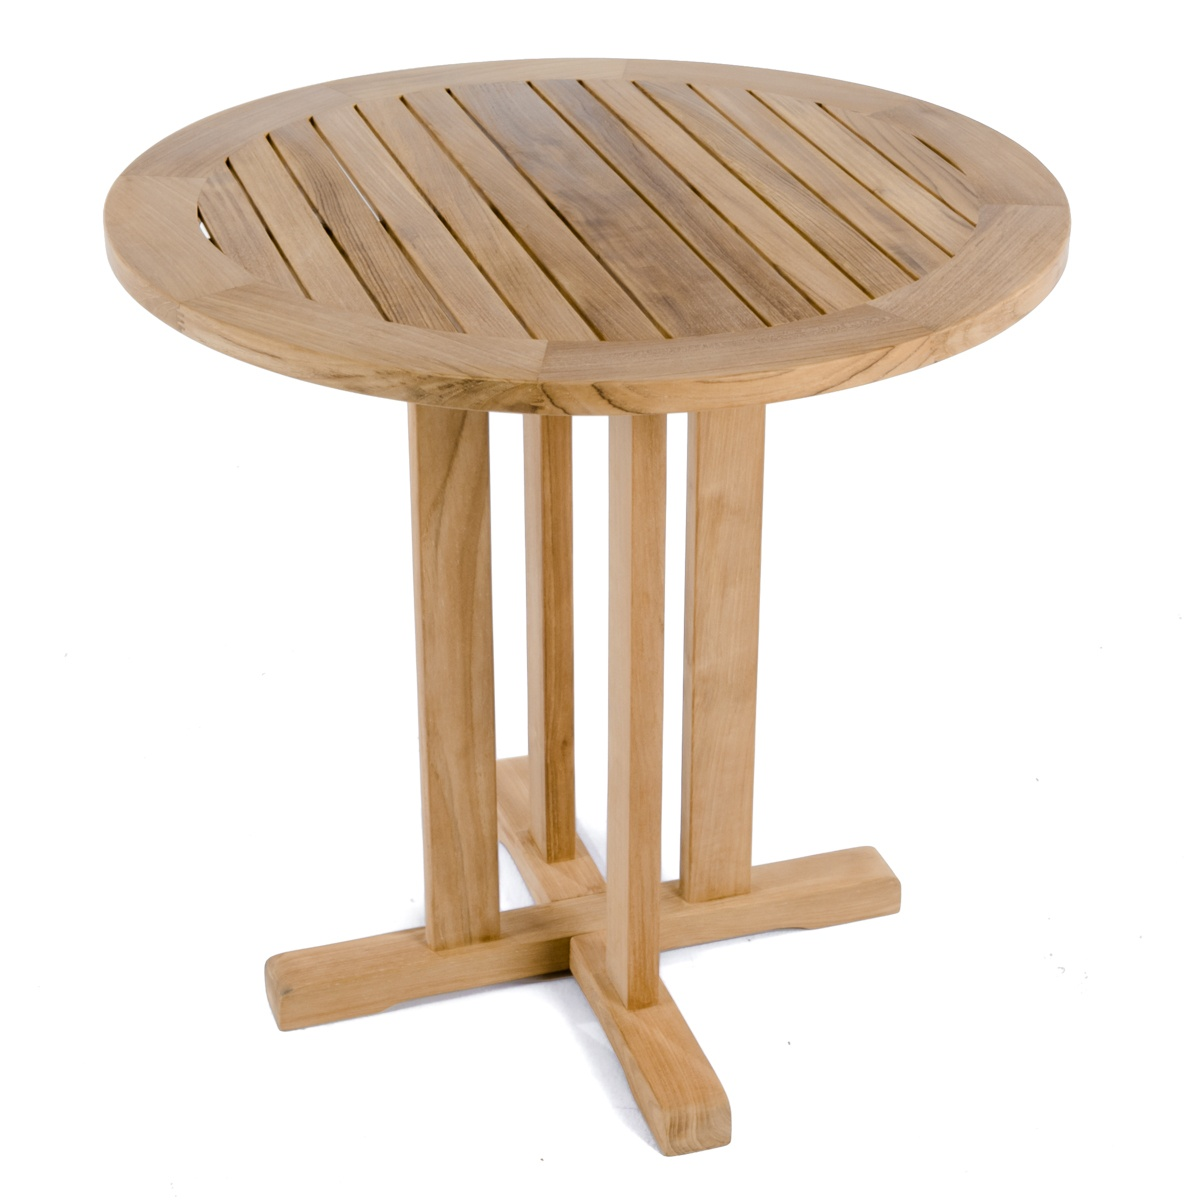 Westminster Teak 30 Inch Round Bistro Table   Comm   Westminster Teak  Outdoor Furniture Part 41